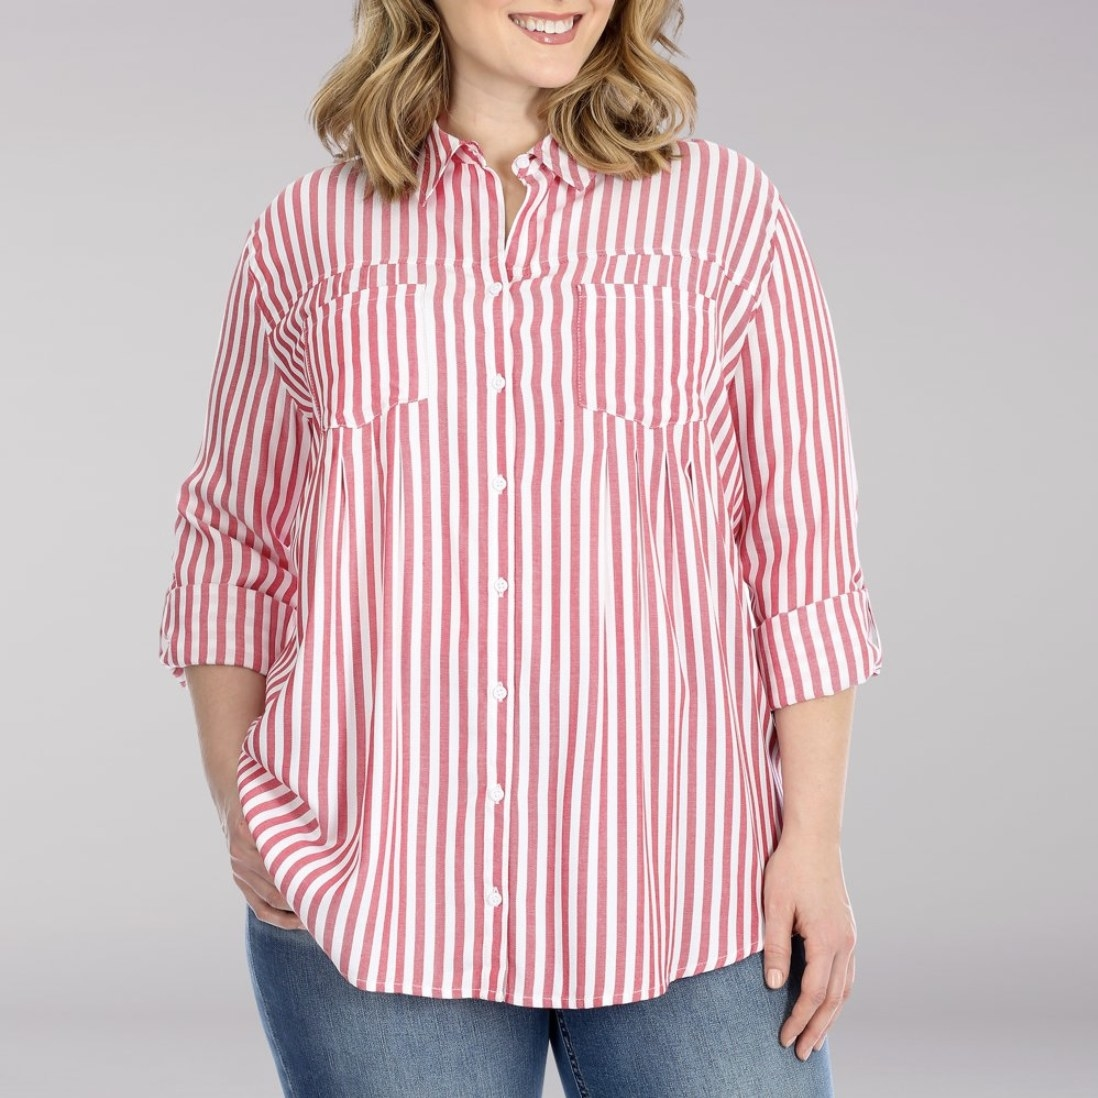 A model in red and white striped button down long-sleeved top